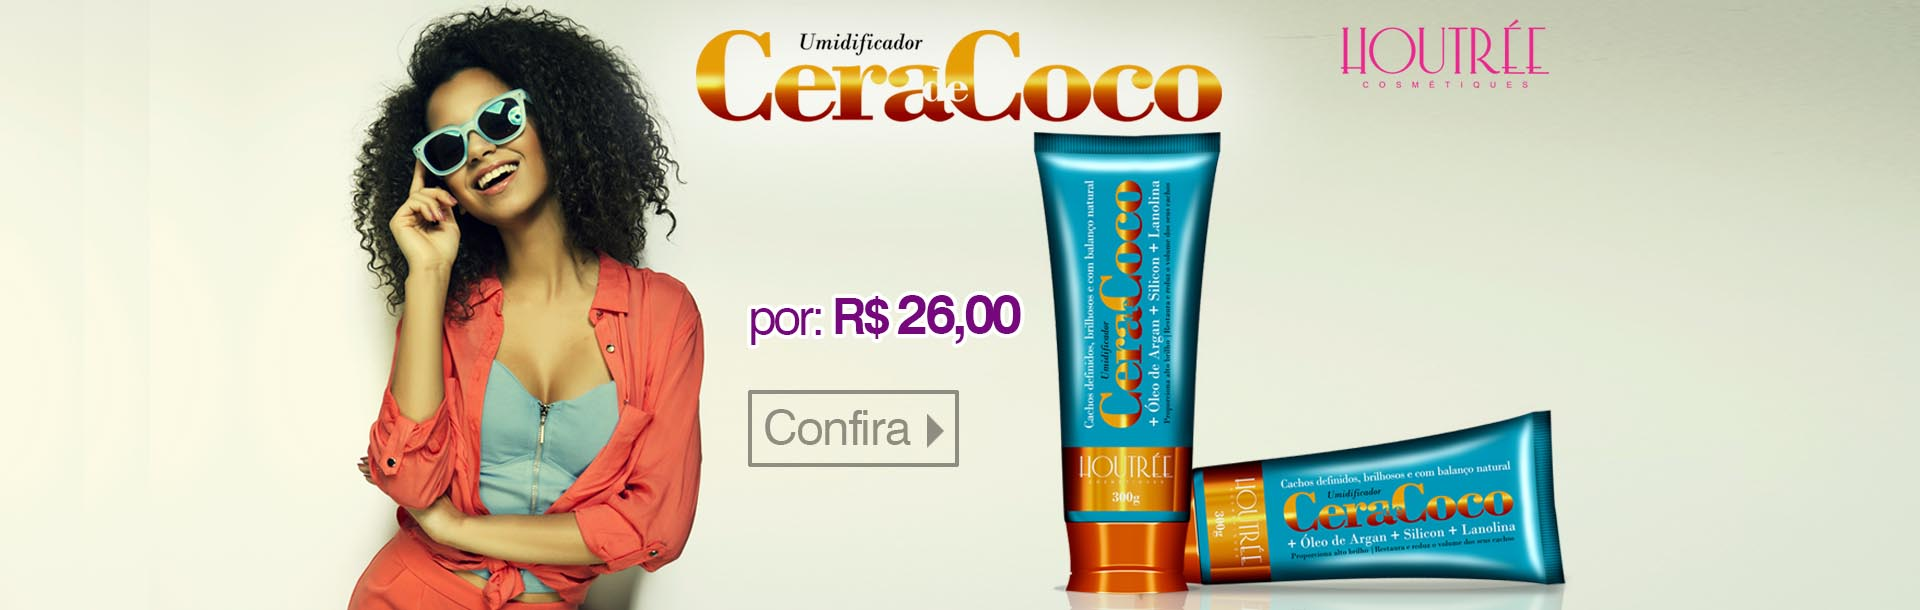 houtree cosmeticos